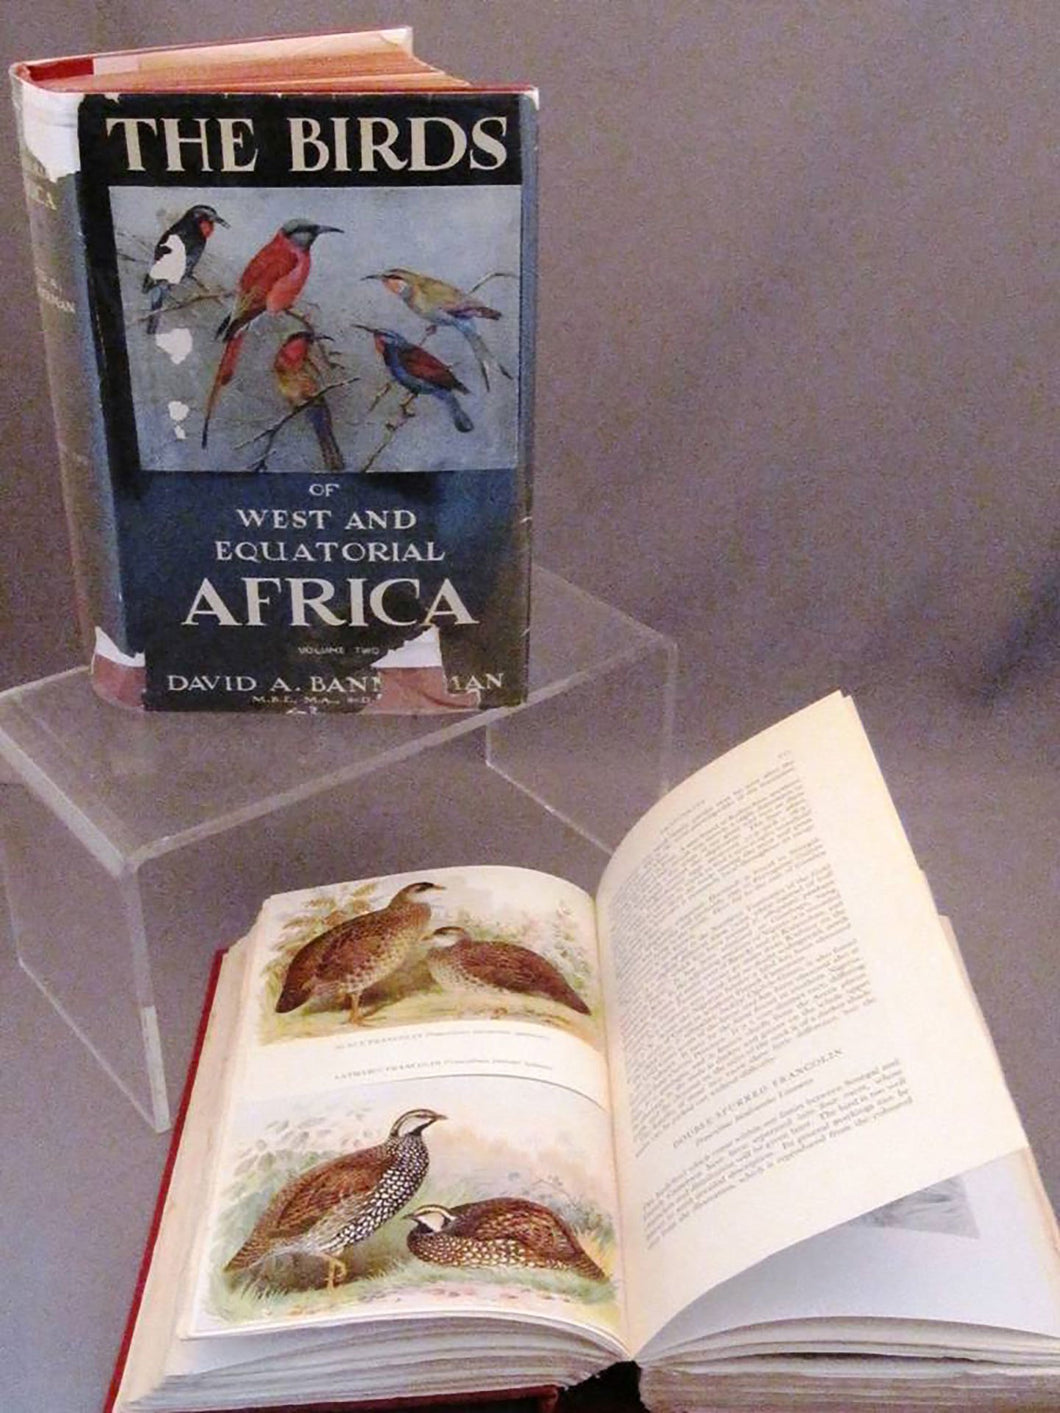 The Birds of West and Equatorial Africa. Vol. 1: Struthionidae to Picidae. Vol. 2: Eurylaemidae to Ploceidae